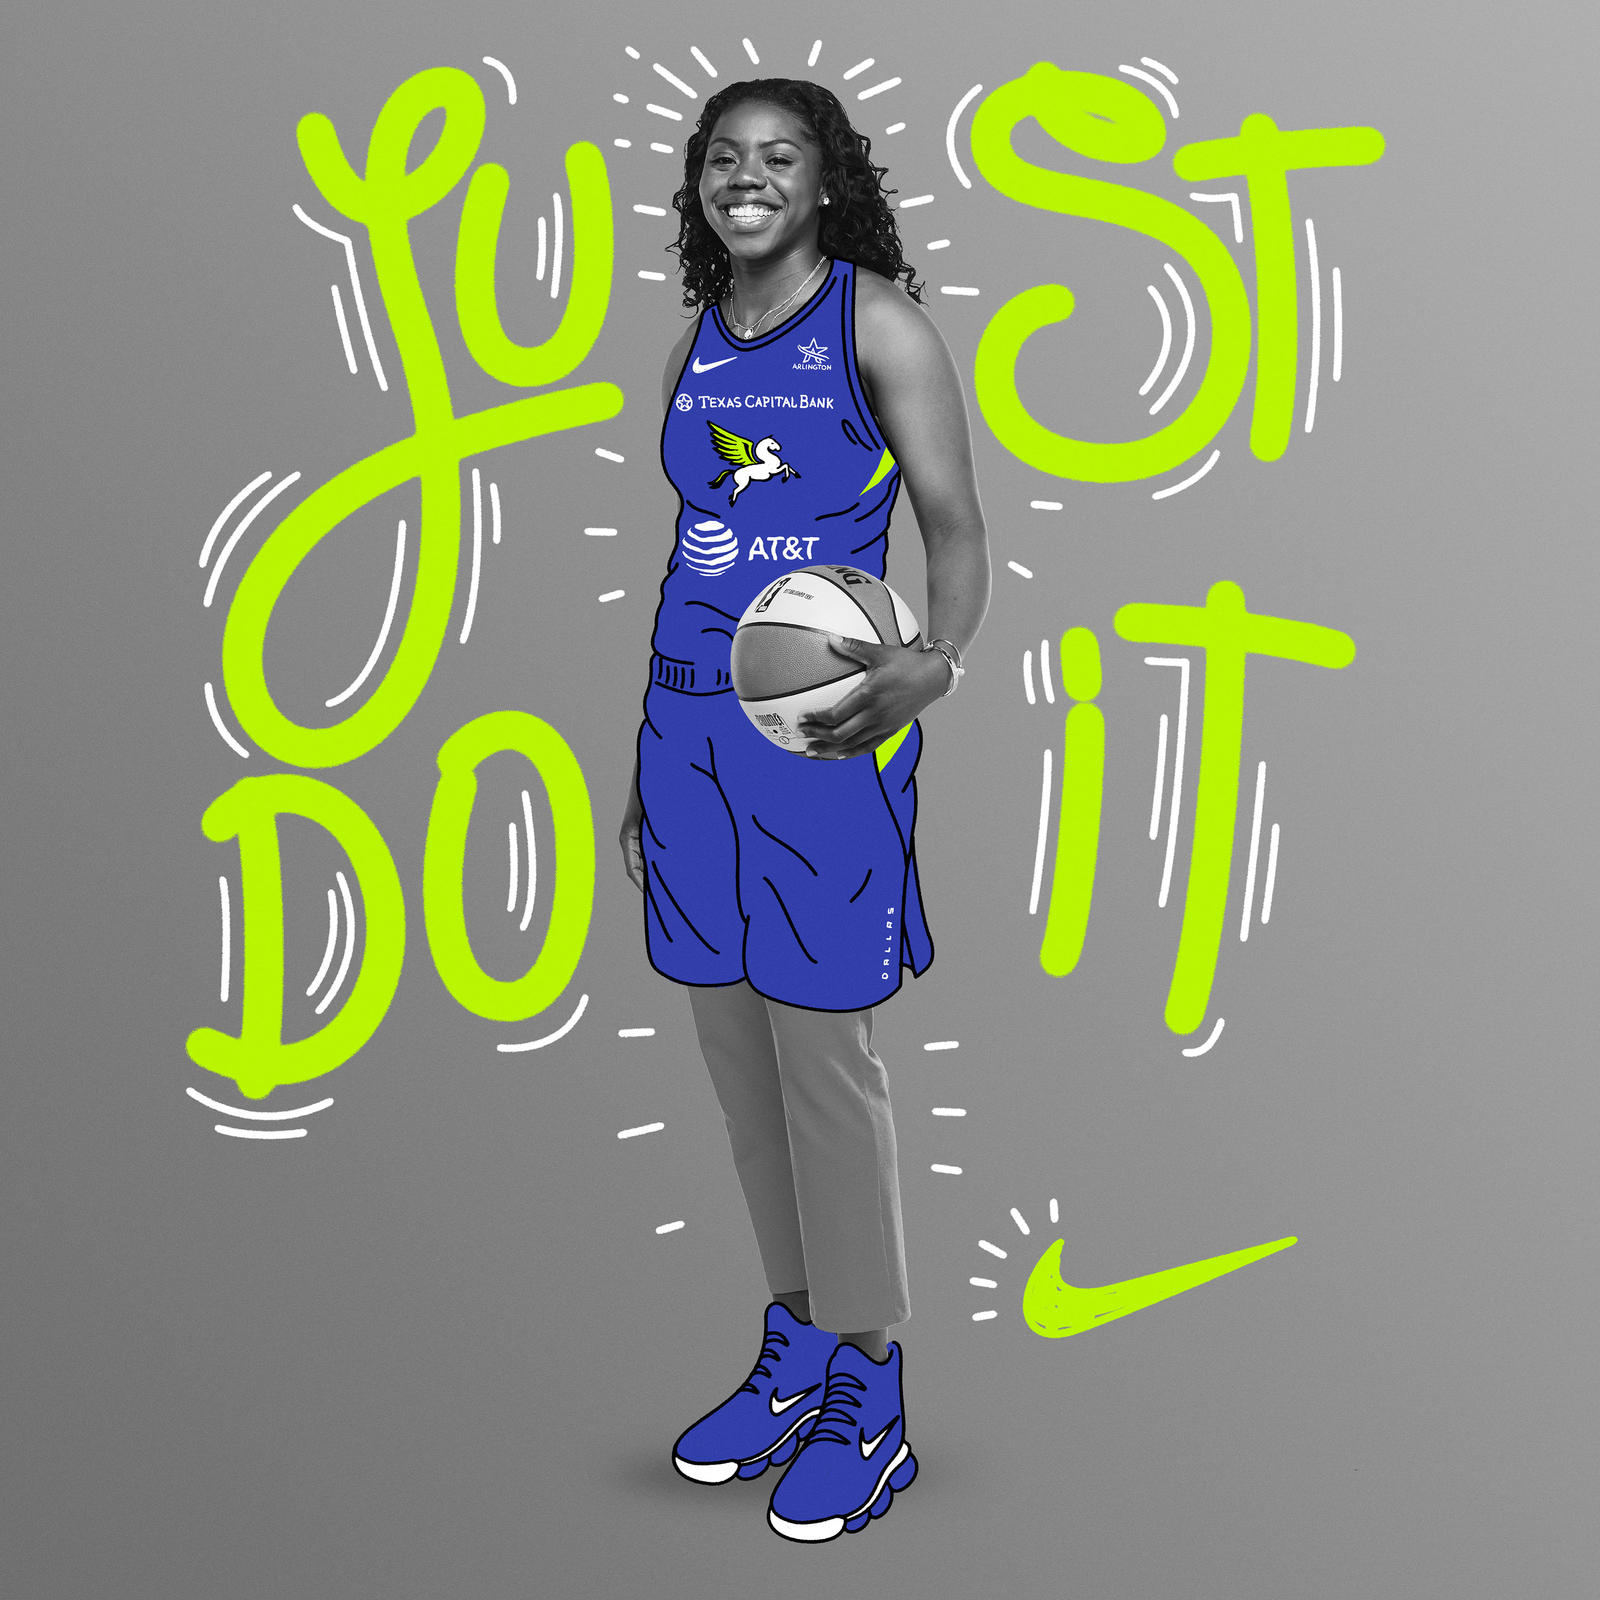 If winning a national championship in 2018 wasn't enough, the 5'8″ guard scored the game-winning shots in both the semifinal and title games. In joining Nike, Ogunbowale looks forward to entering into a family built on storied player partnerships.